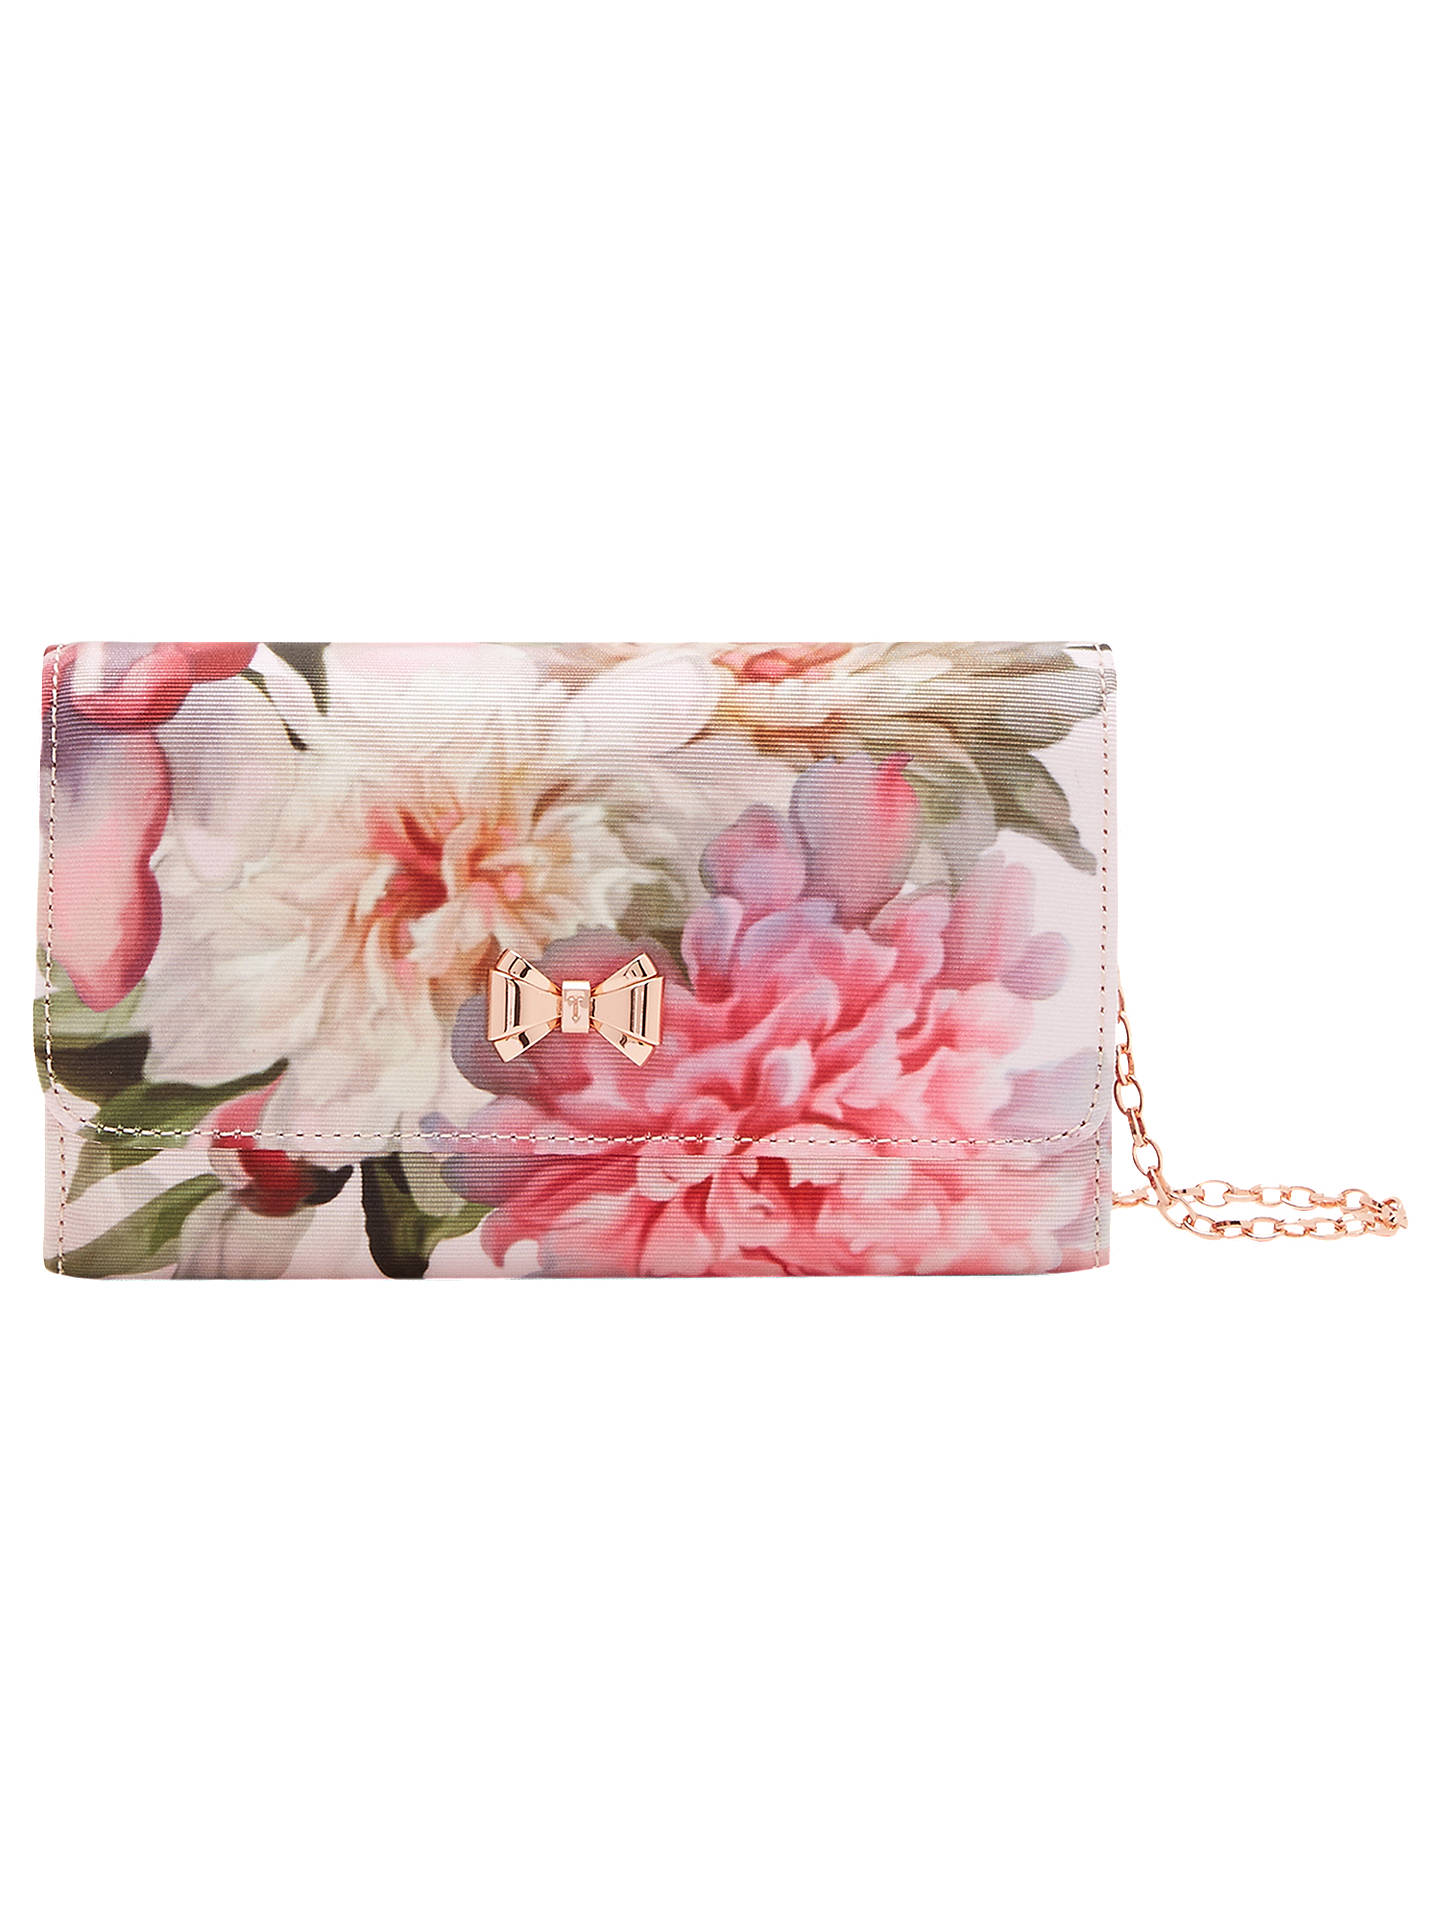 Painted Lewis John Baby Posie Bag Clutch Baker Pink Misoso At Ted